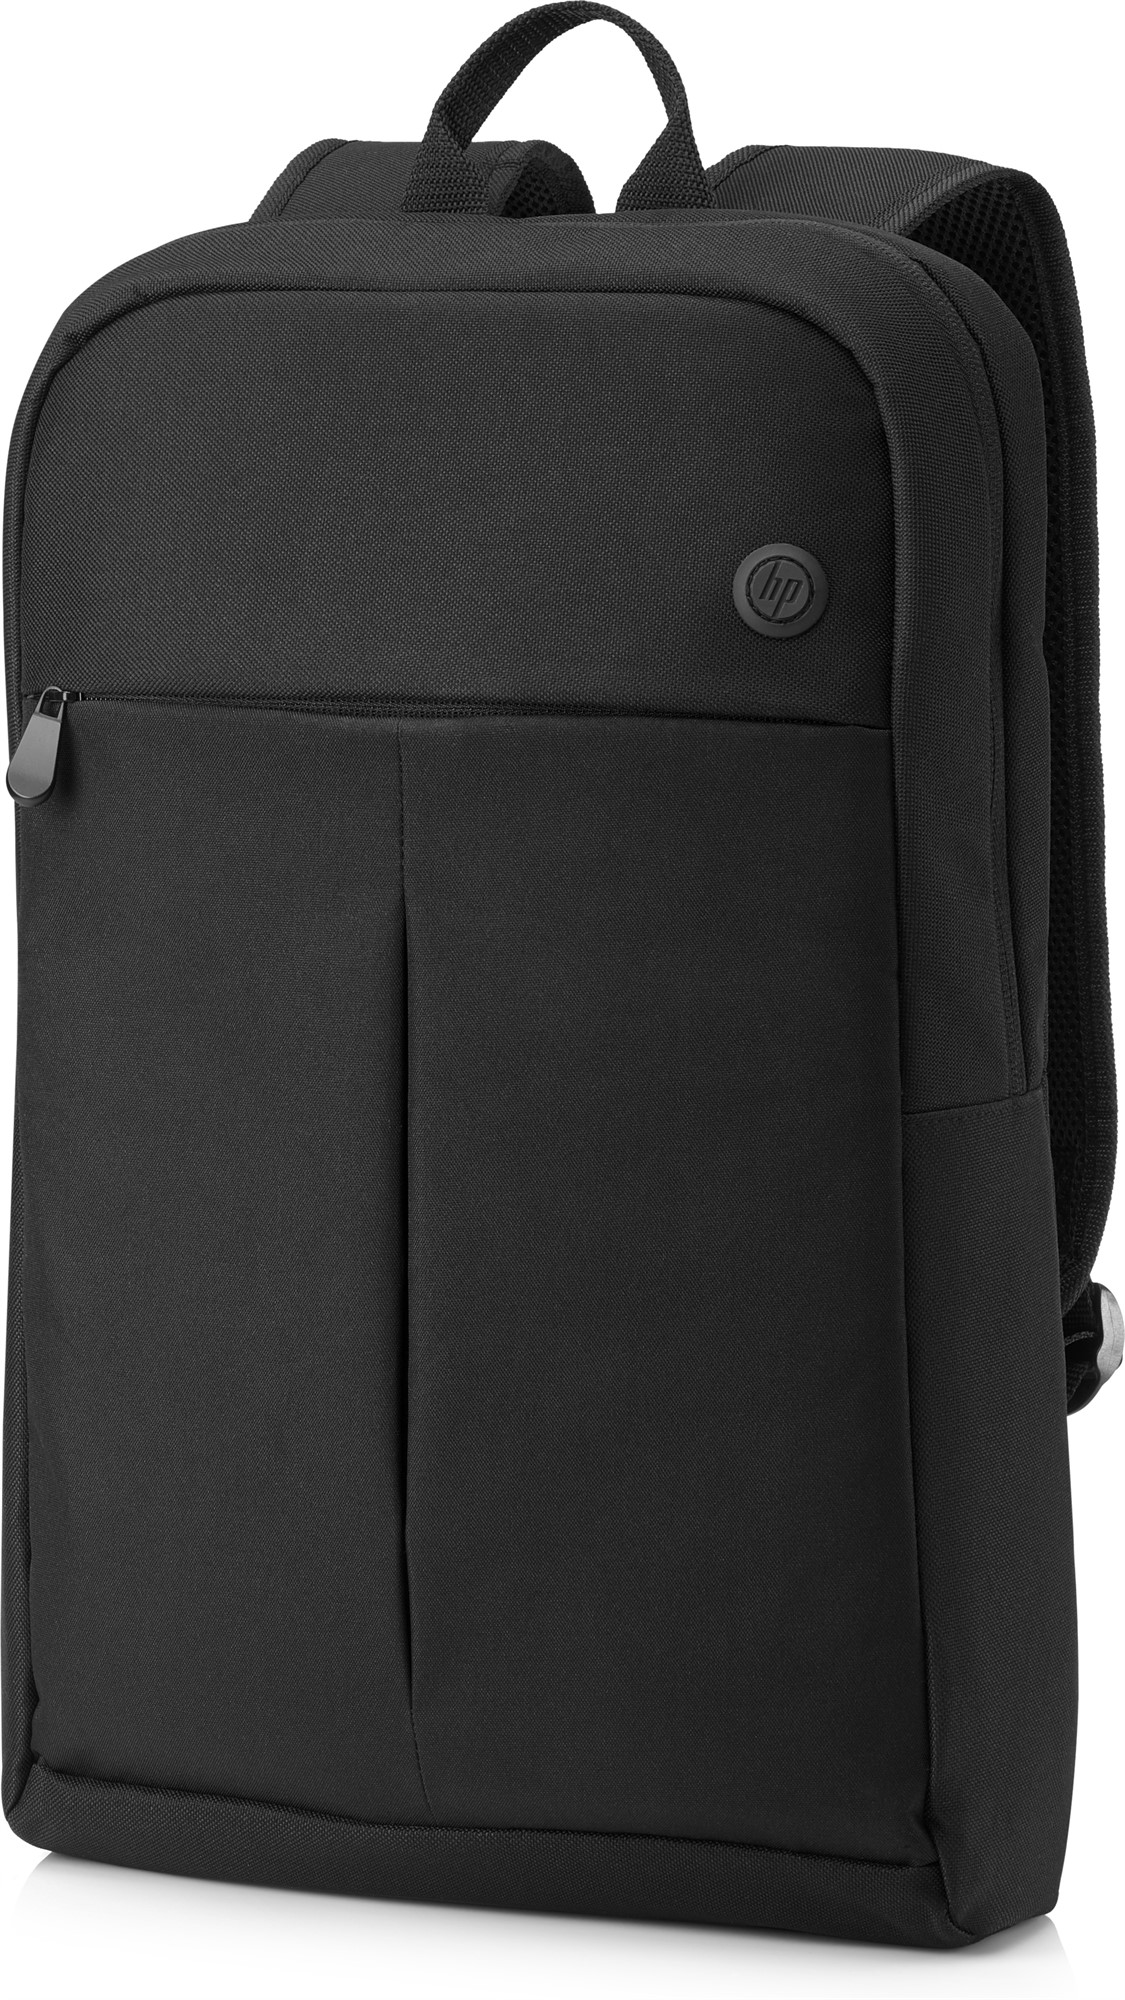 HP 2MW63AA PRELUDE BACKPACK 15.6 15.6